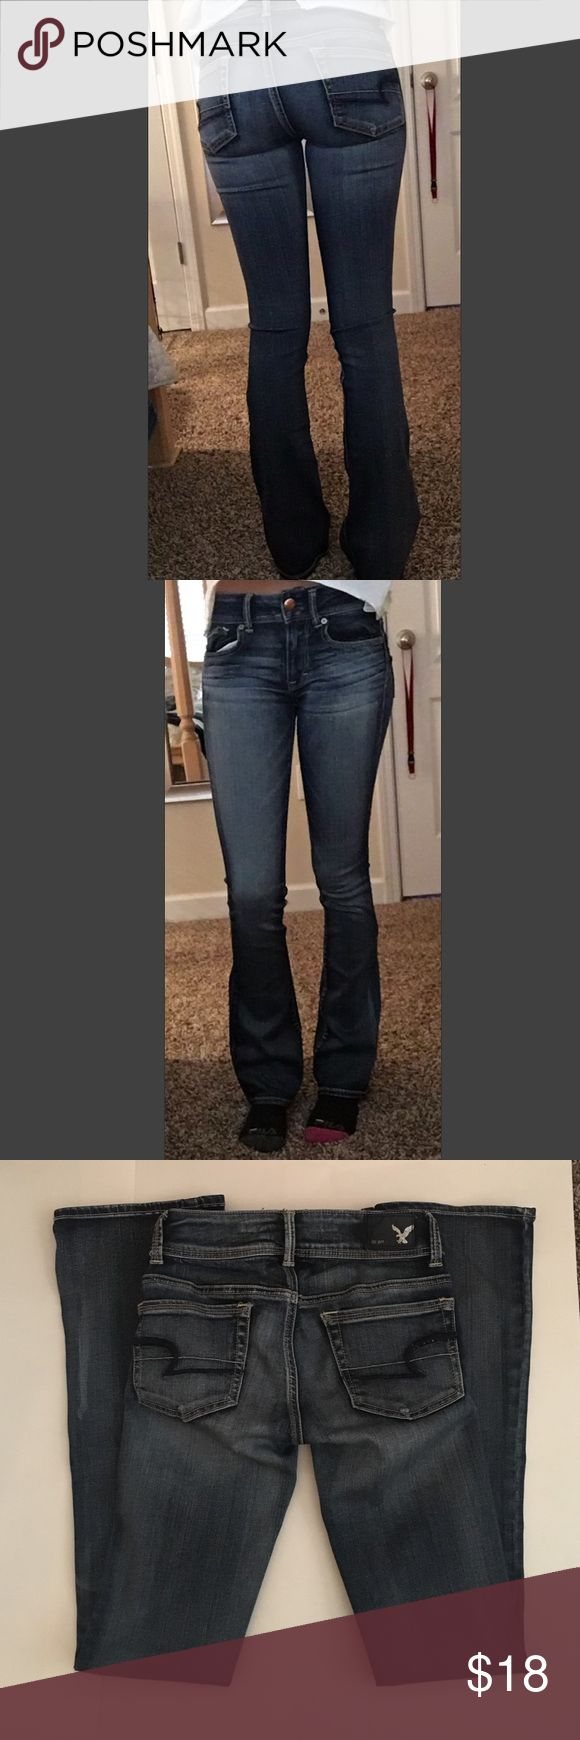 American Eagle Bootcut Jeans American Eagle Bootcut Jeans. Size: 00 In great condition. American Eagle Outfitters Jeans Boot Cut